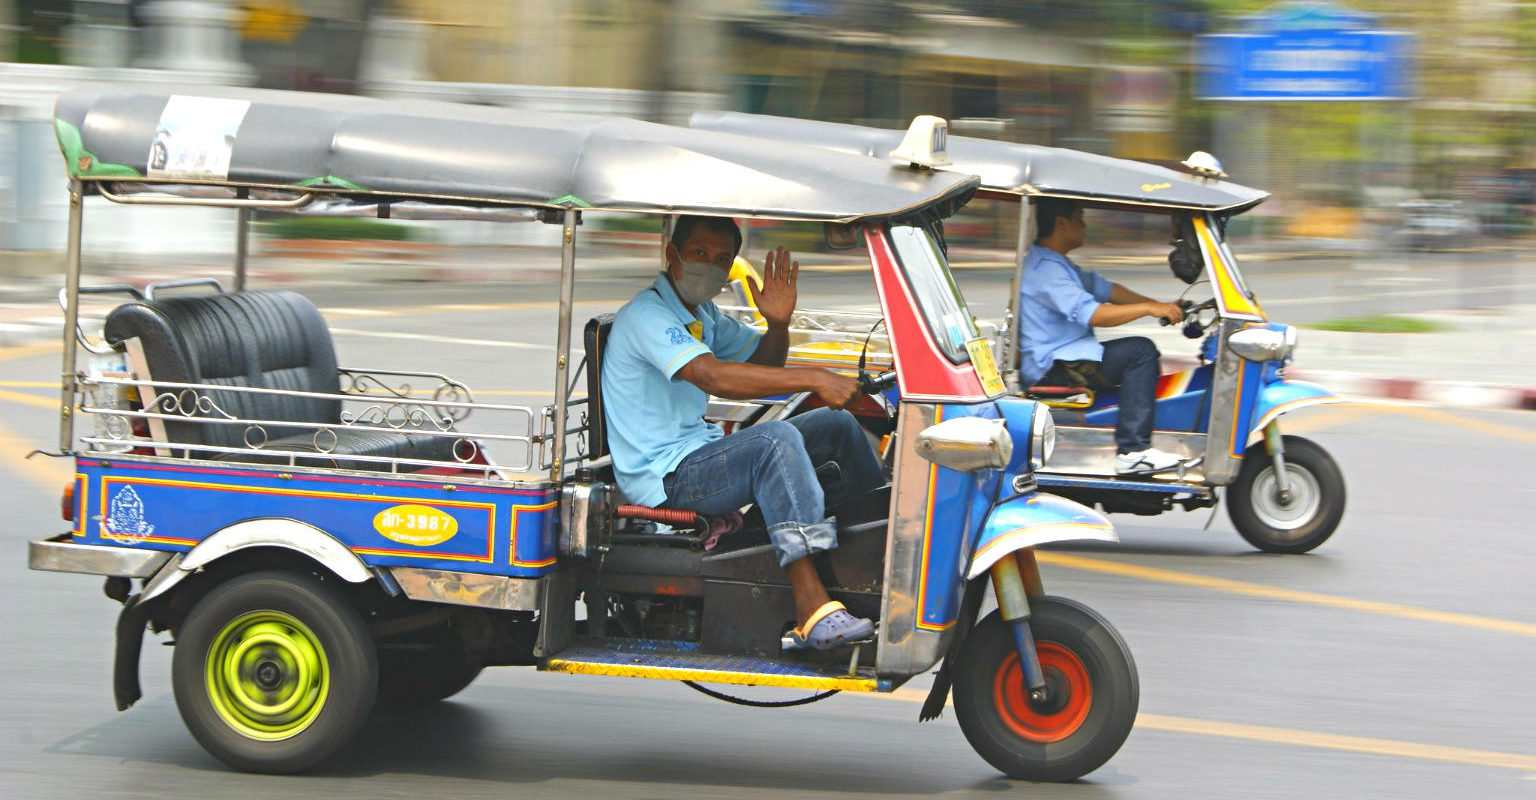 A tuk tuk driver waving at the camera